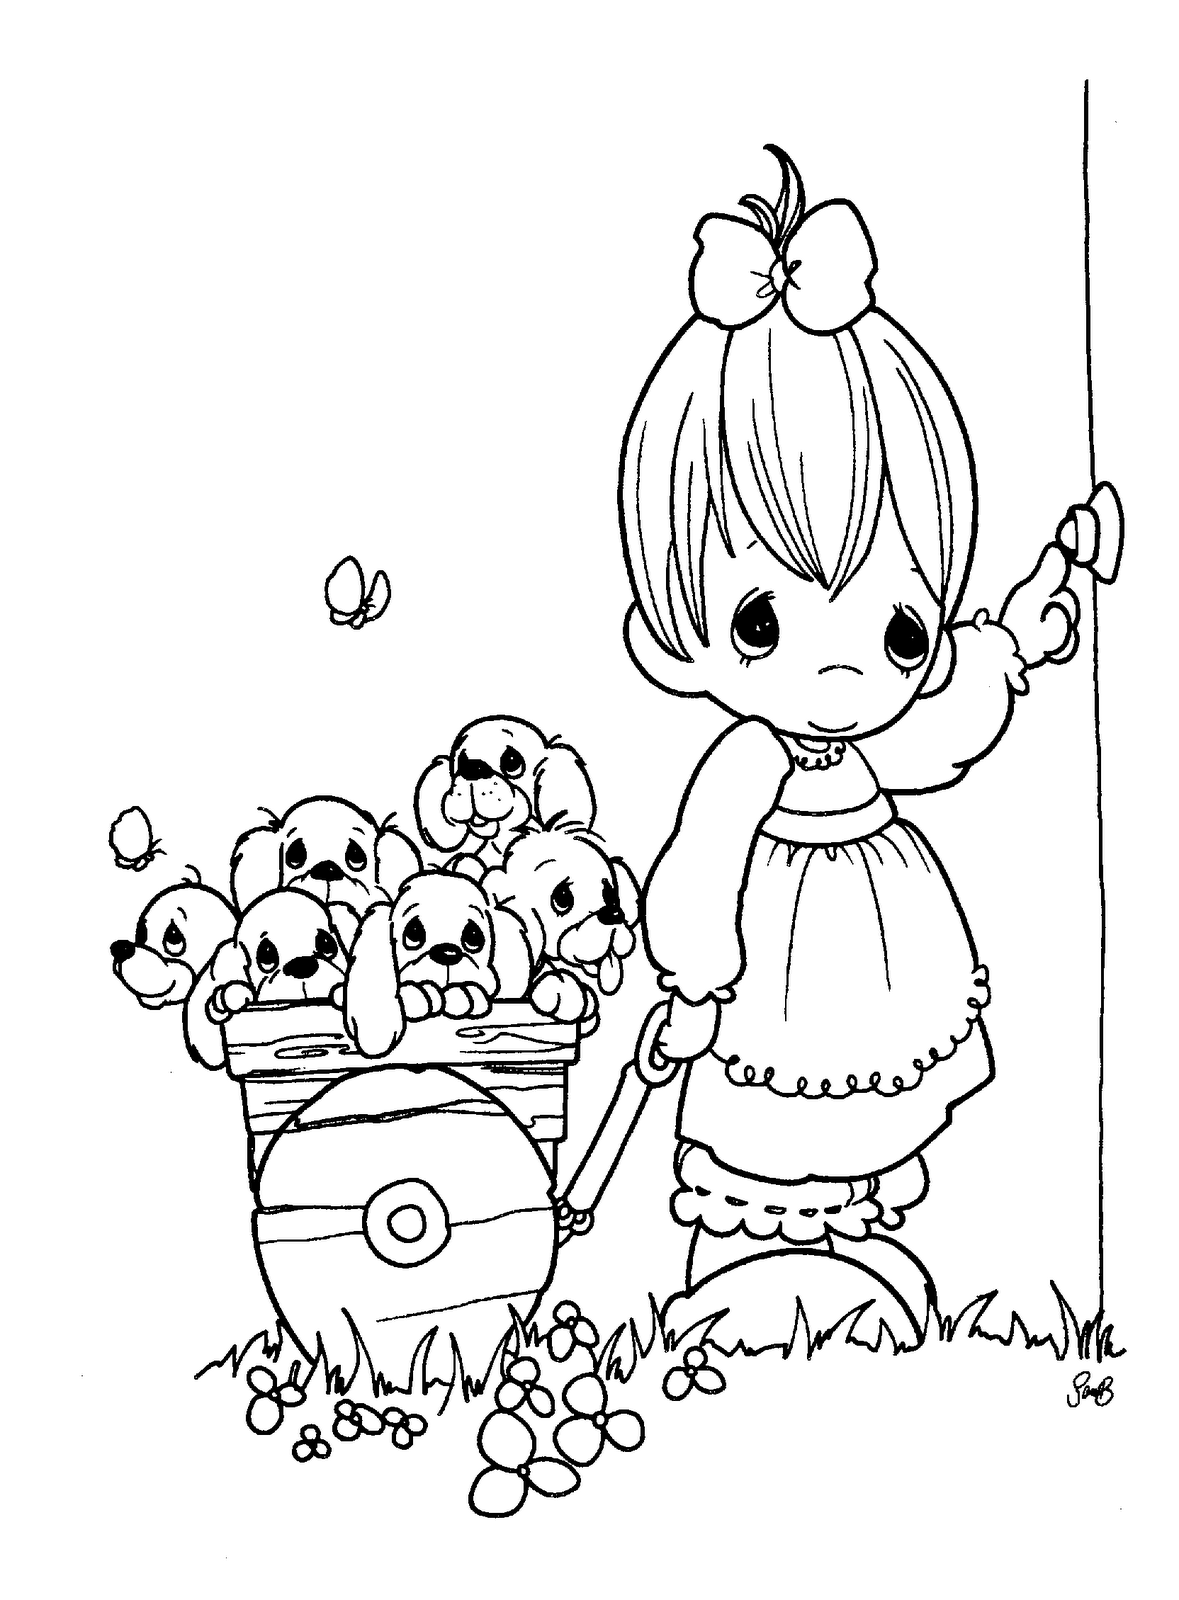 Precious Moments Coloring Pages at GetDrawings.com | Free for ...